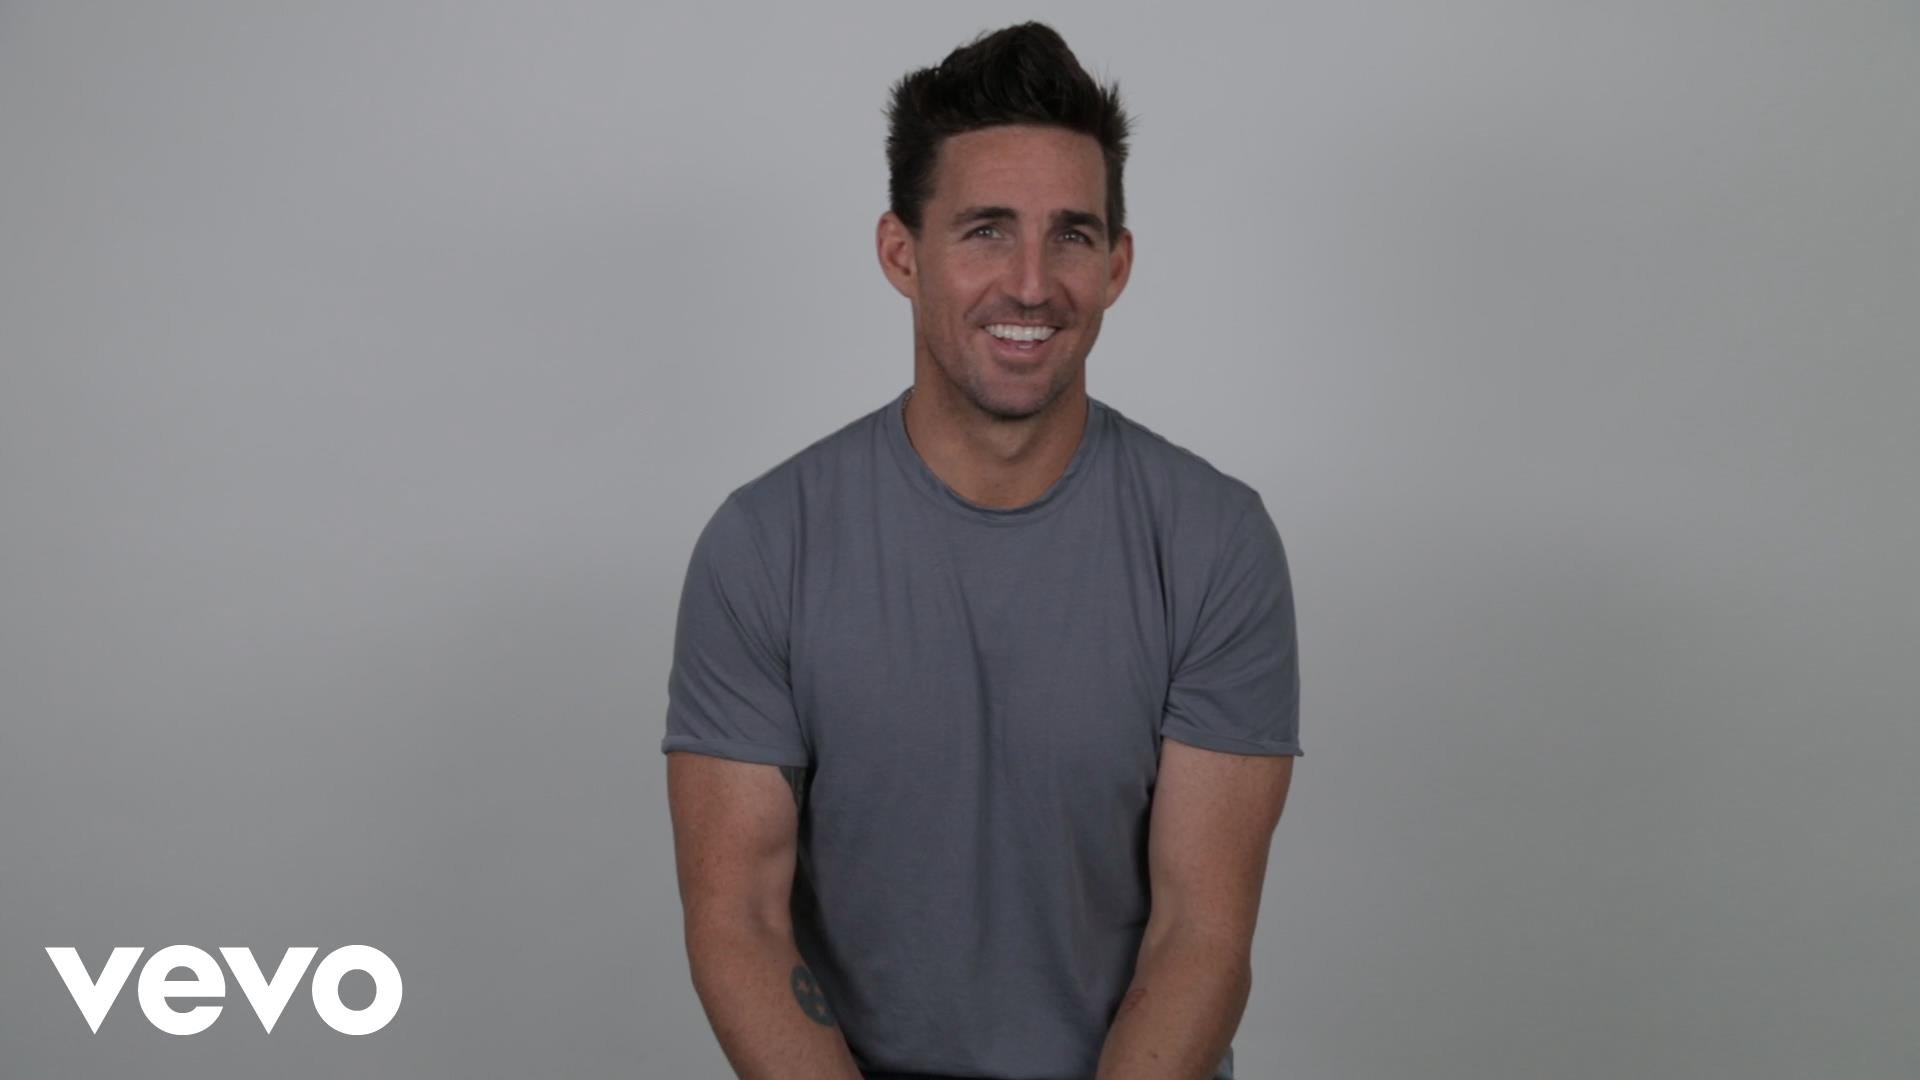 Jake Owen – :60 with